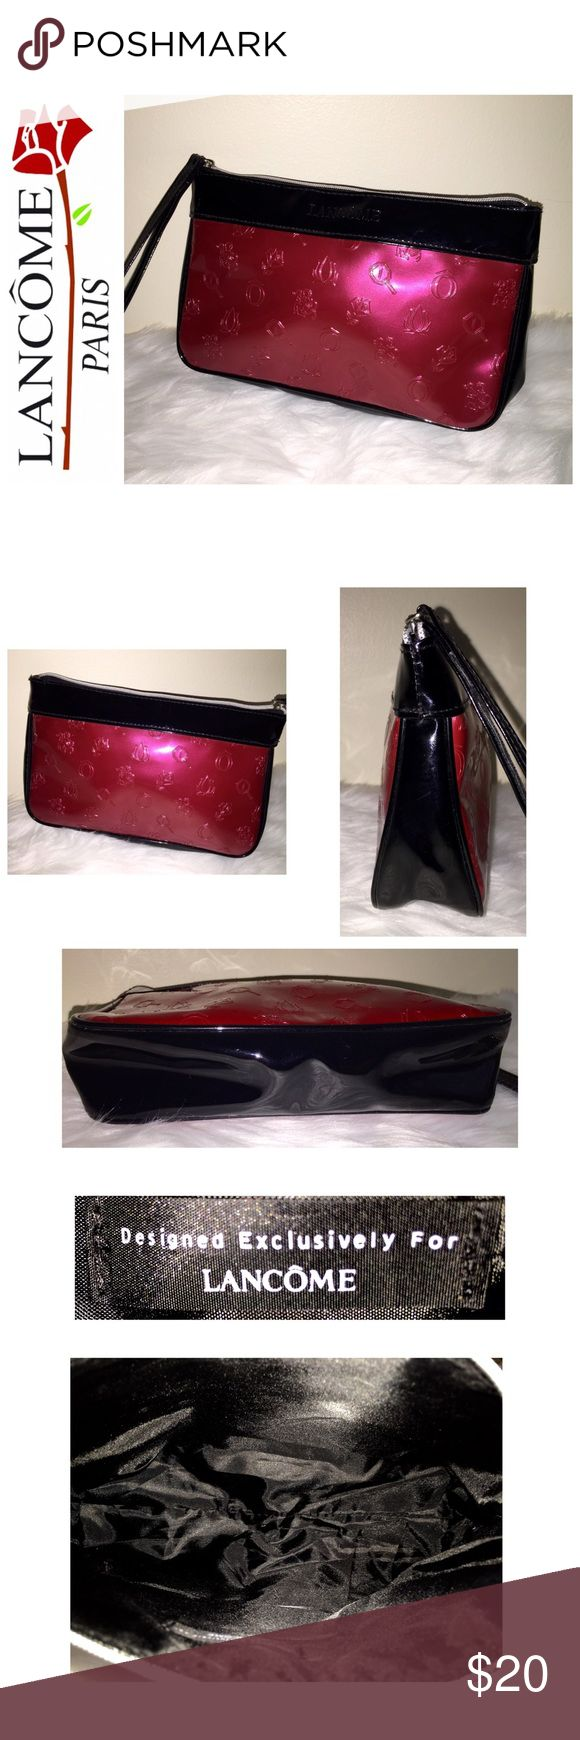 "Lancôme Designer Cosmetic Bag Lancôme Designer Cosmetic Bag, Beautiful Two Toned Dark Pink and Black Vinyl Material with Black Nylon Interior, Zip Top Closure with 6"" Zip Handle, Approx. Size is 8 1/2""x 5 1/2""x 2 1/2"", NWOT! Lancome Bags Cosmetic Bags & Cases"